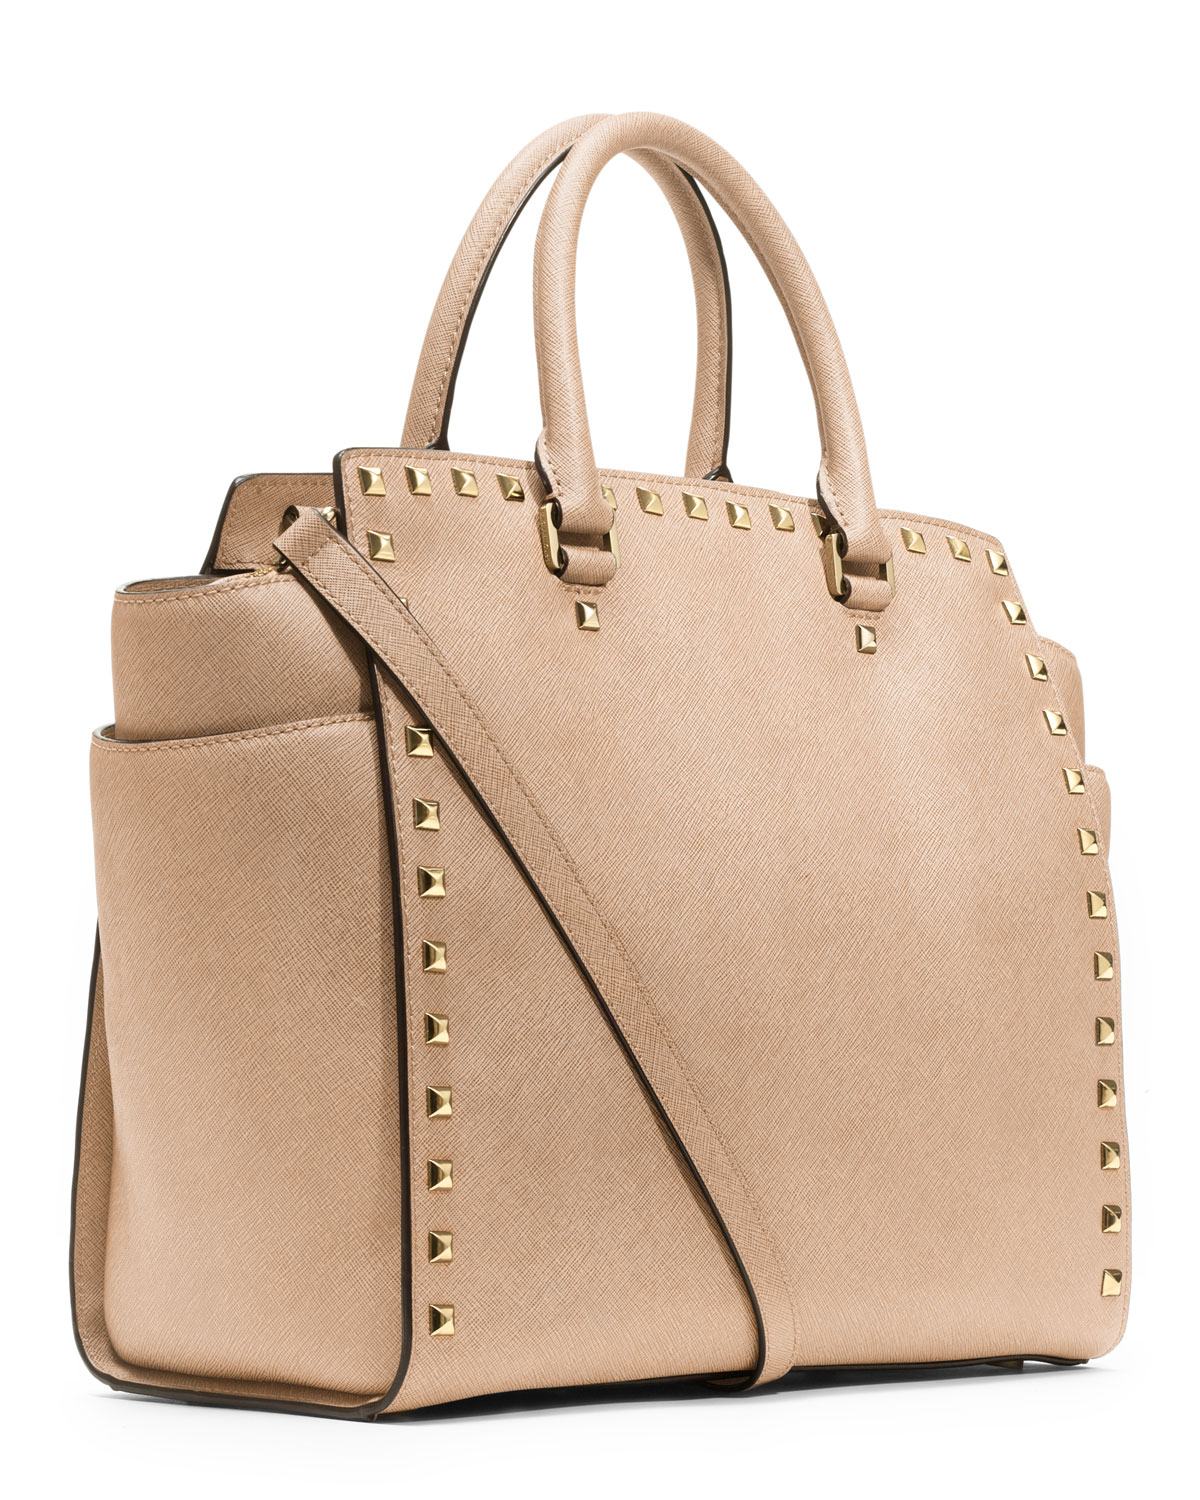 05f1d2acbe51 MICHAEL Michael Kors Large Selma Studded Saffiano Tote in Natural - Lyst